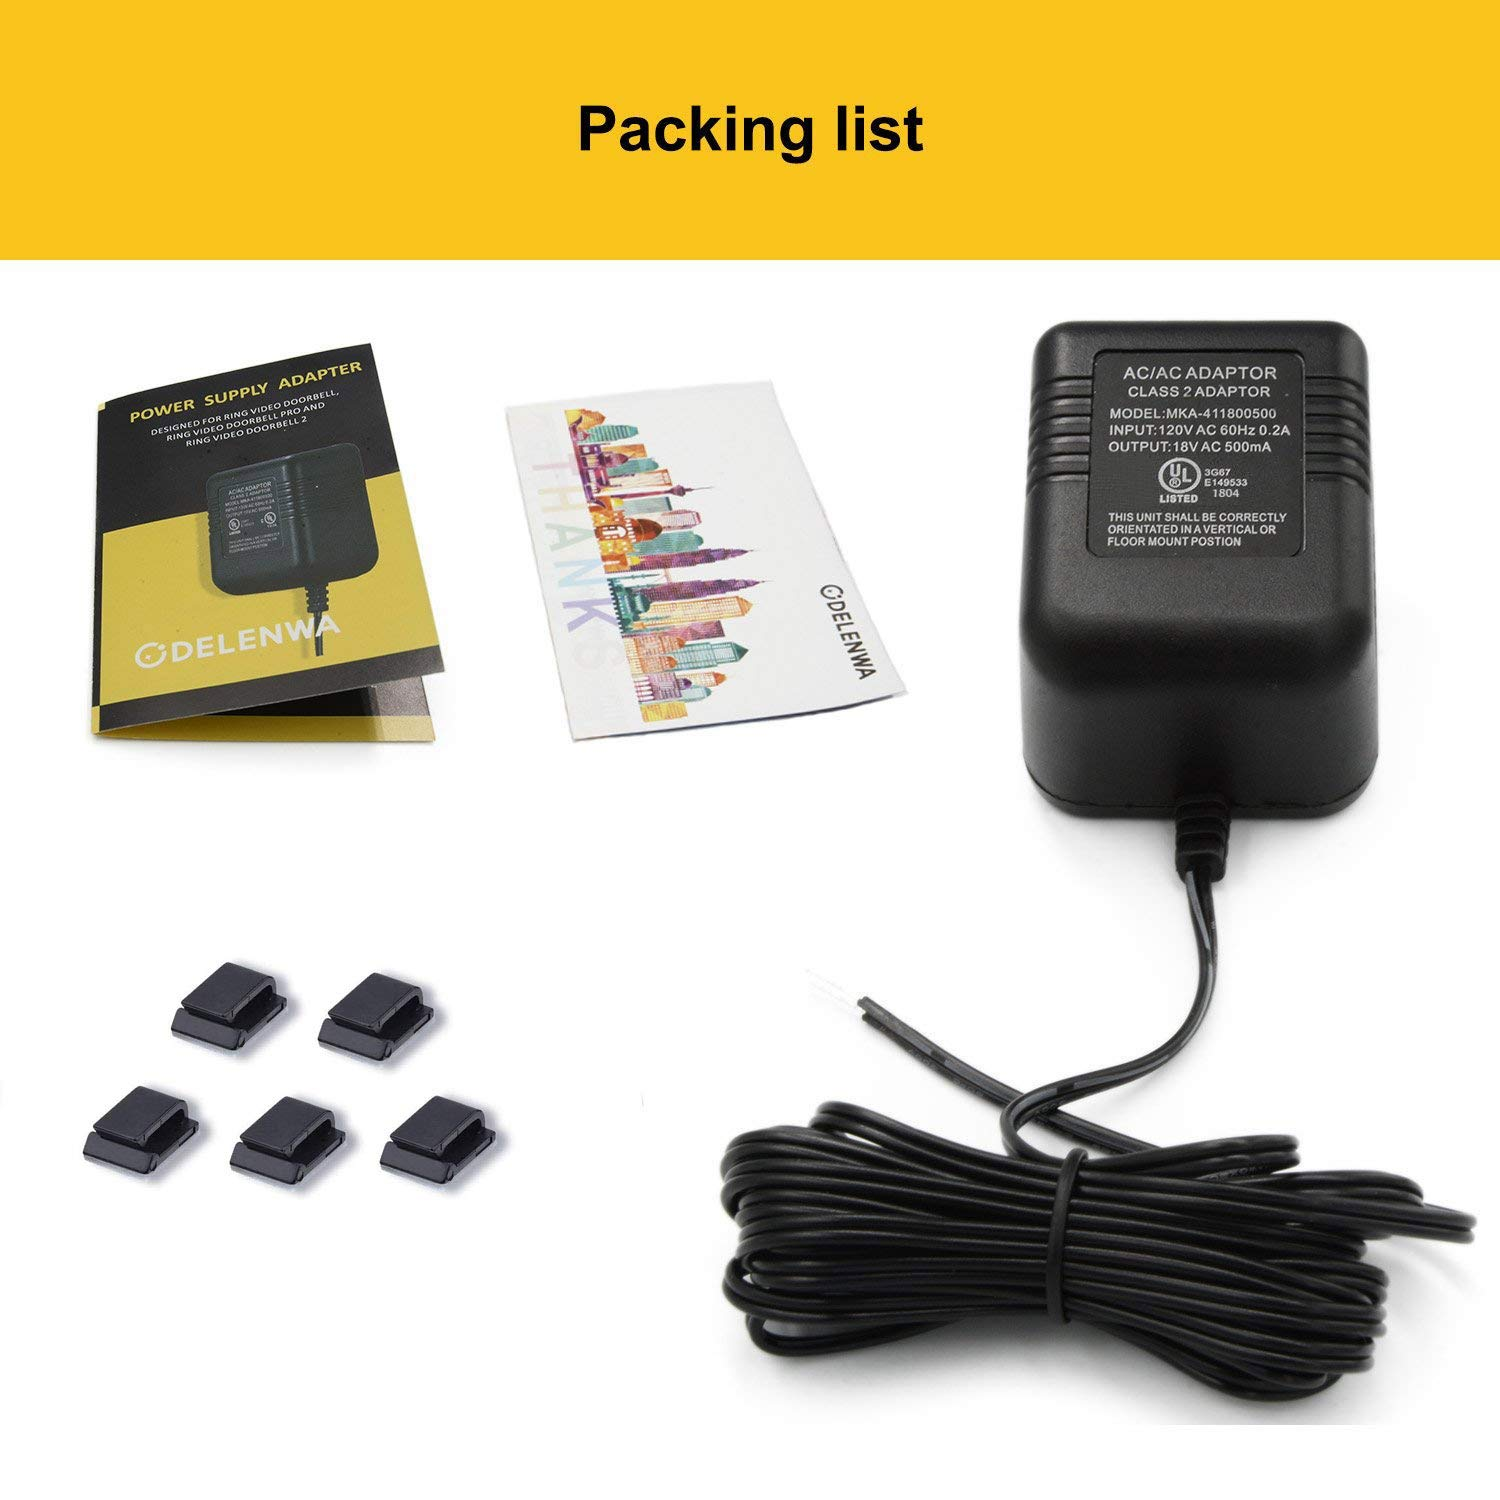 Power Adapter for RING Doorbell, UL Certificated Power Supply for RING Video Doorbell, RING Video Doorbell 2 & RING Video Doorbell Pro Battery Charger by ODELENWA (Image #7)